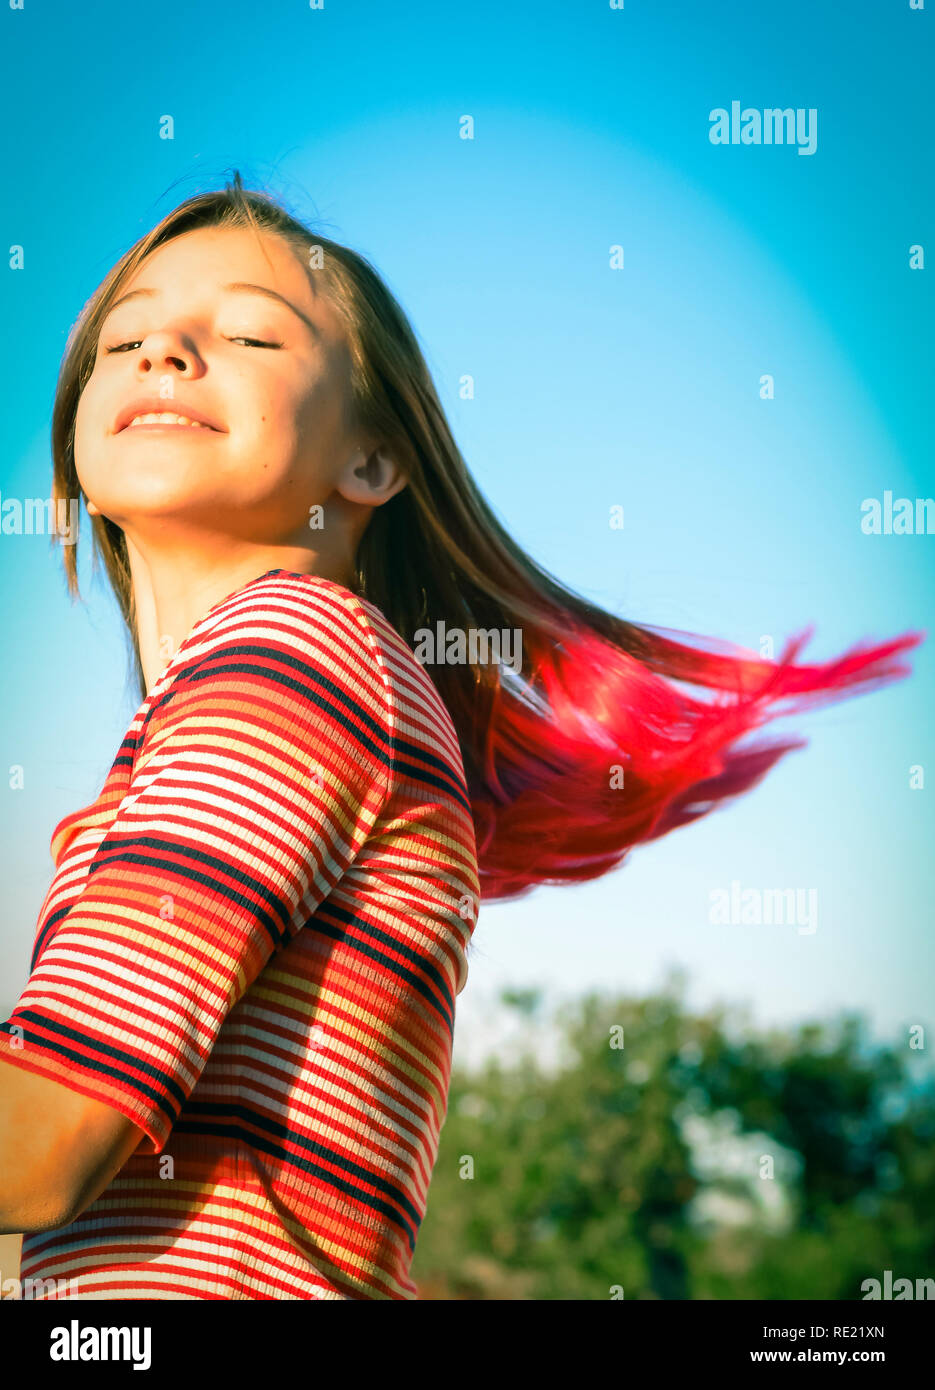 Tween girl swinging and twirling her trendy pink tipped blond hair outside - Stock Image